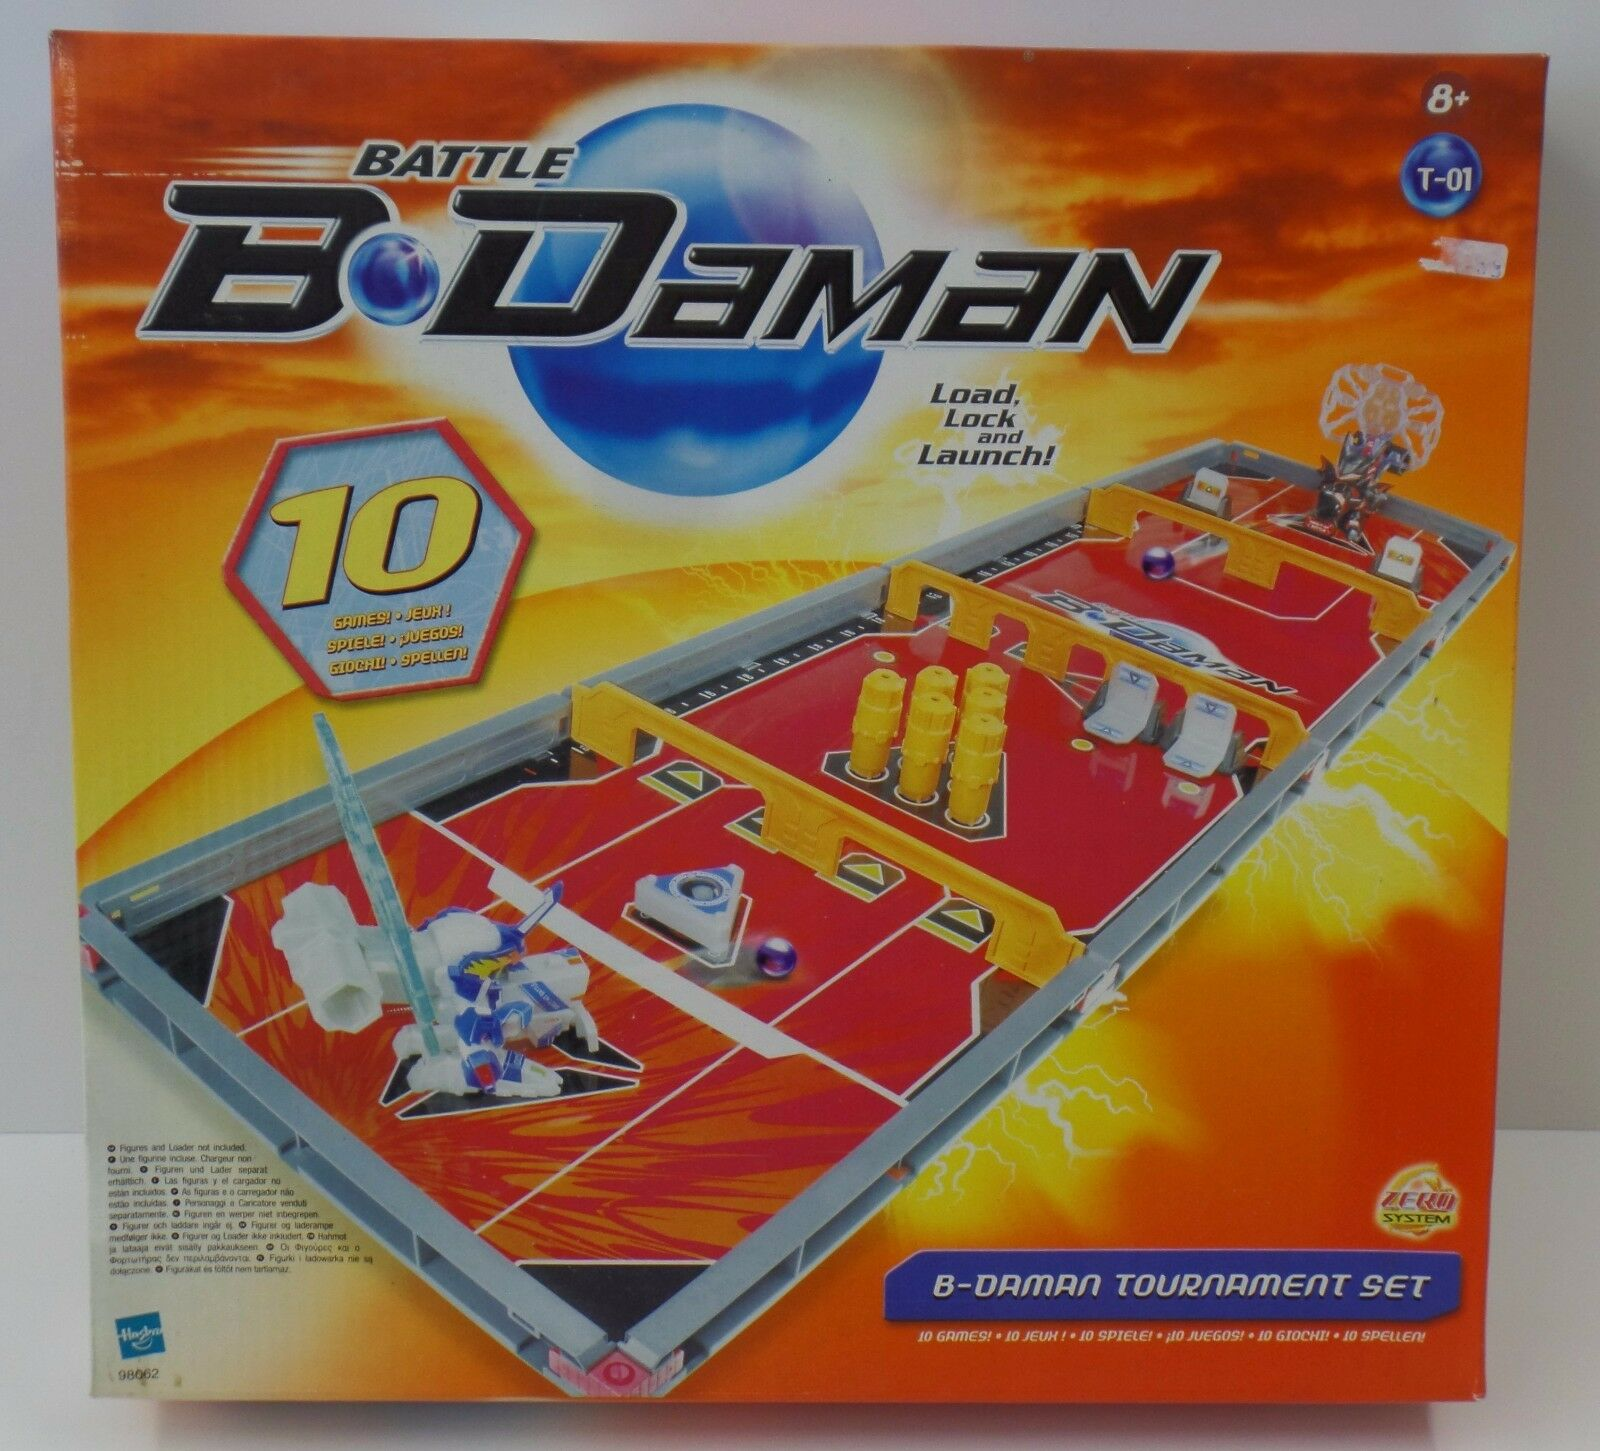 HASBRO-B-Dauomo-torneo  Set-TOURNAMENT SET-NUOVO nuovo  negozio online